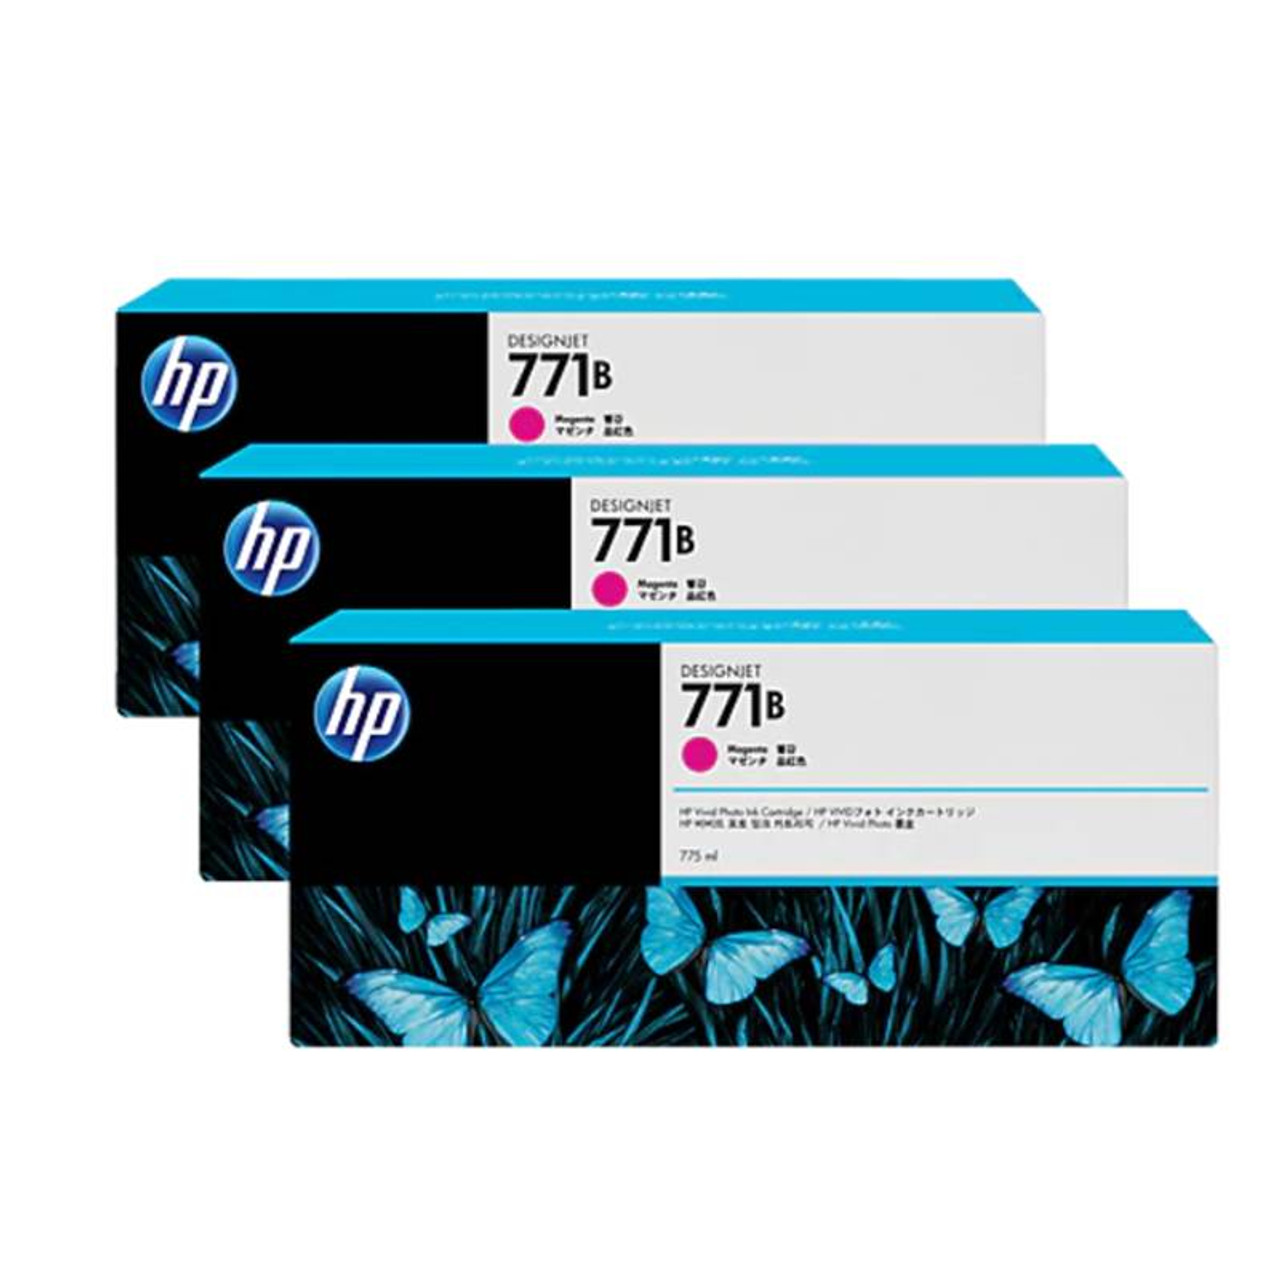 Image for HP771B 775ML 3-Pack Ink Cartridge - Magenta (B6Y25A) CX Computer Superstore